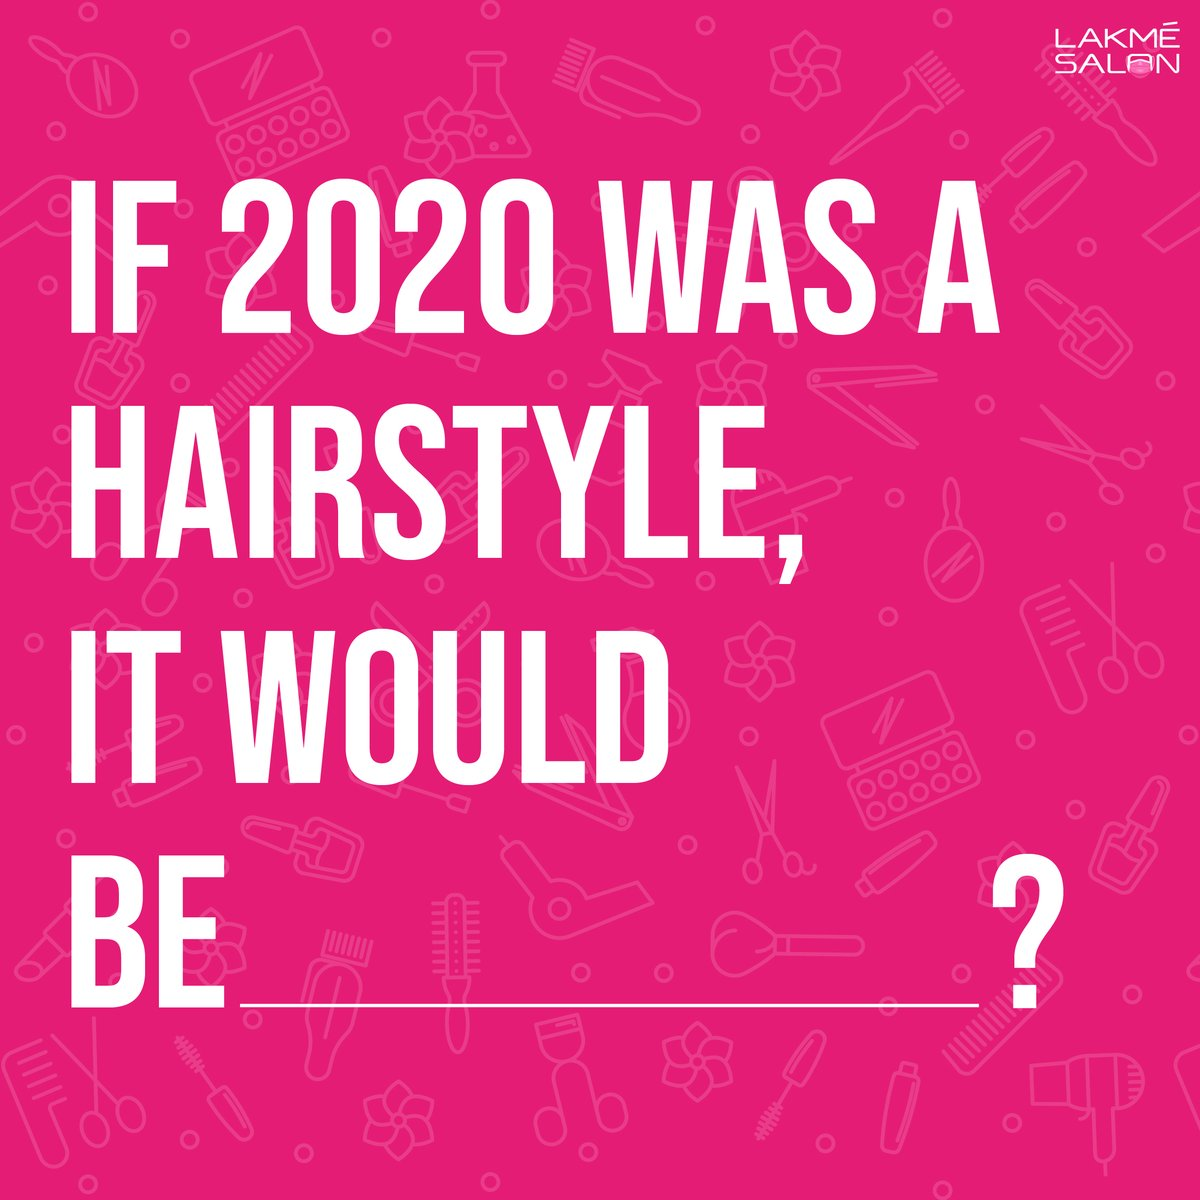 Is it a top knot vibe or a messy bun situation? Tell us your 2020 mood in the comments below 👇 . #2020 #pandemic #hairstlyes #quarantinelife #messyhairs #quarantinefeels #staysafe #hairs #hairstylist #lakmesalon #salon https://t.co/u3Wf2LdJzS